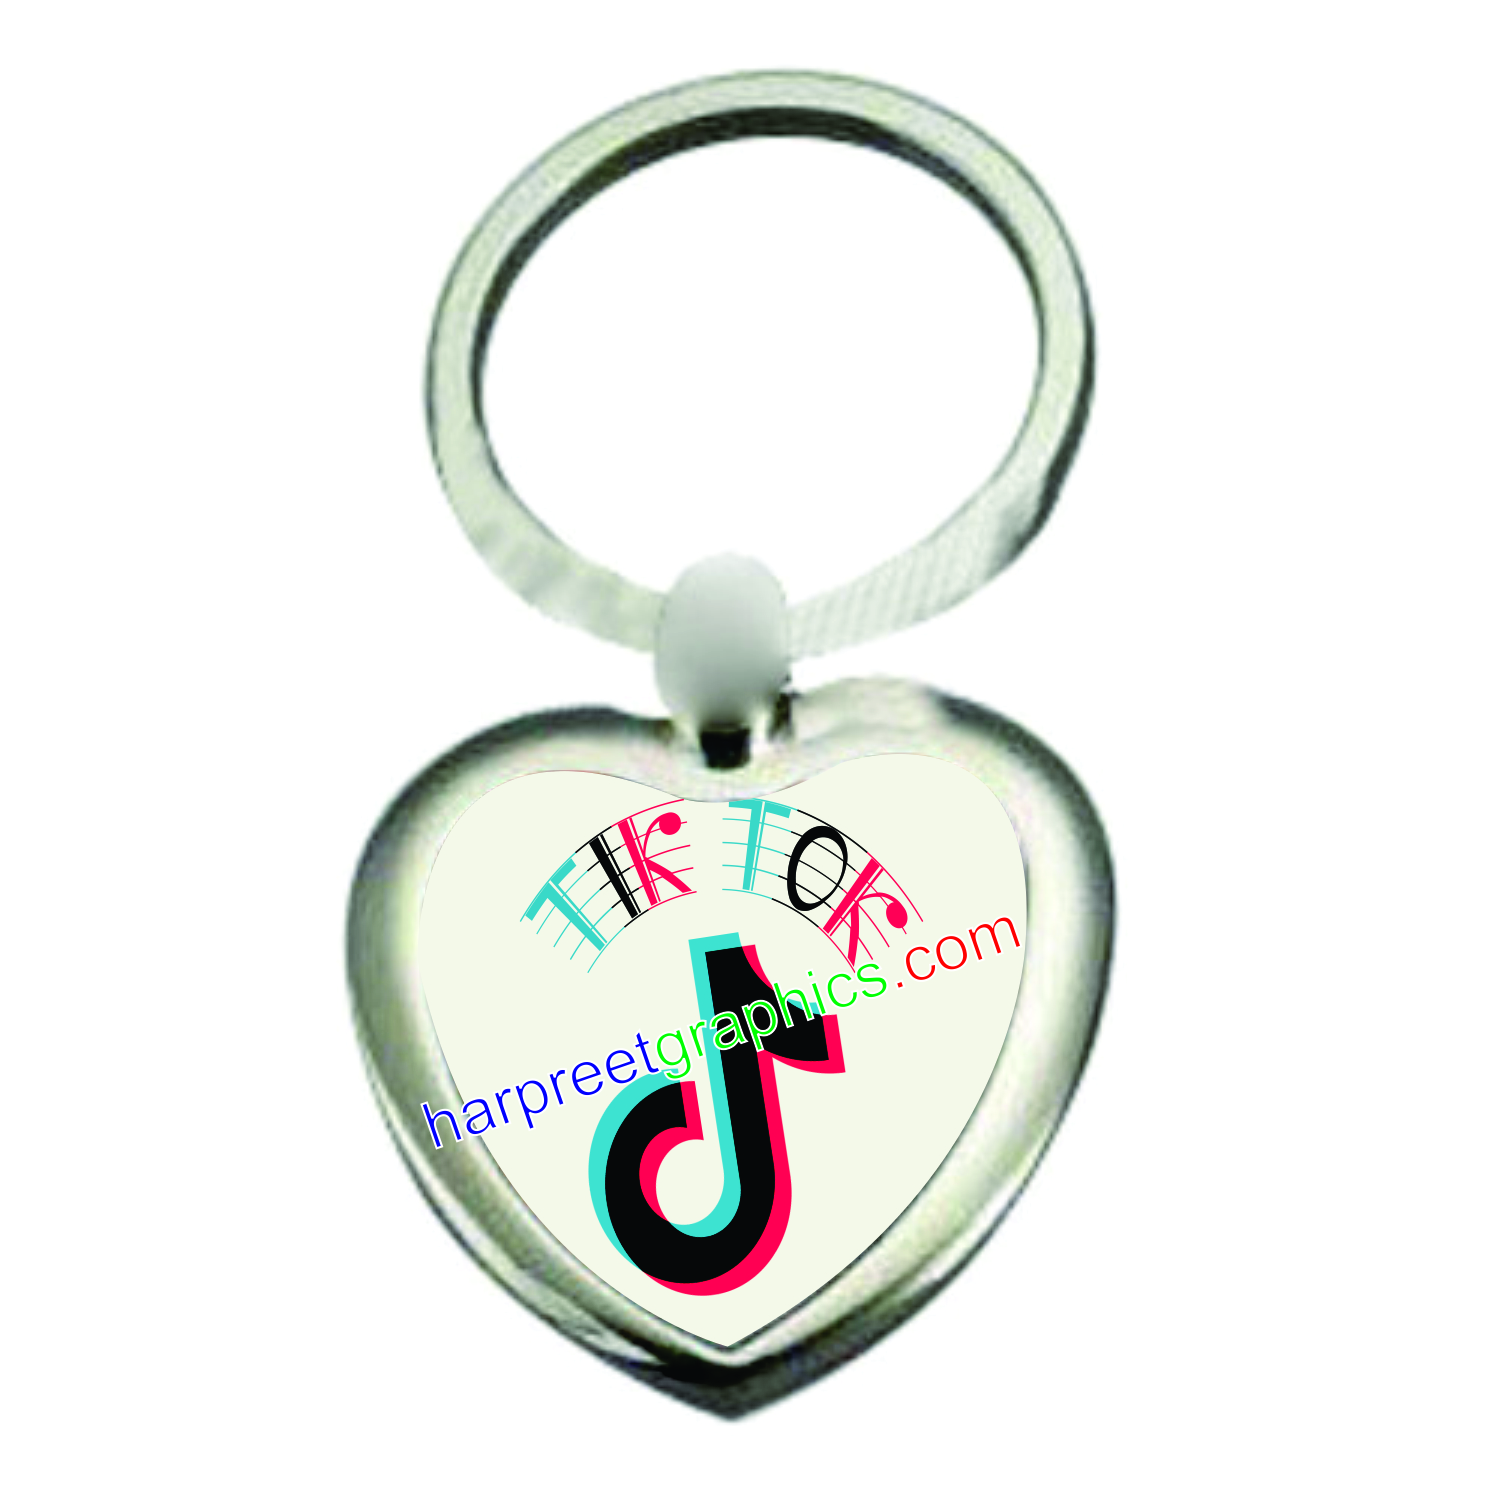 HARPREERT-GRAPHICS-METAL-KEYRING-heartt-SHAPE.jpg